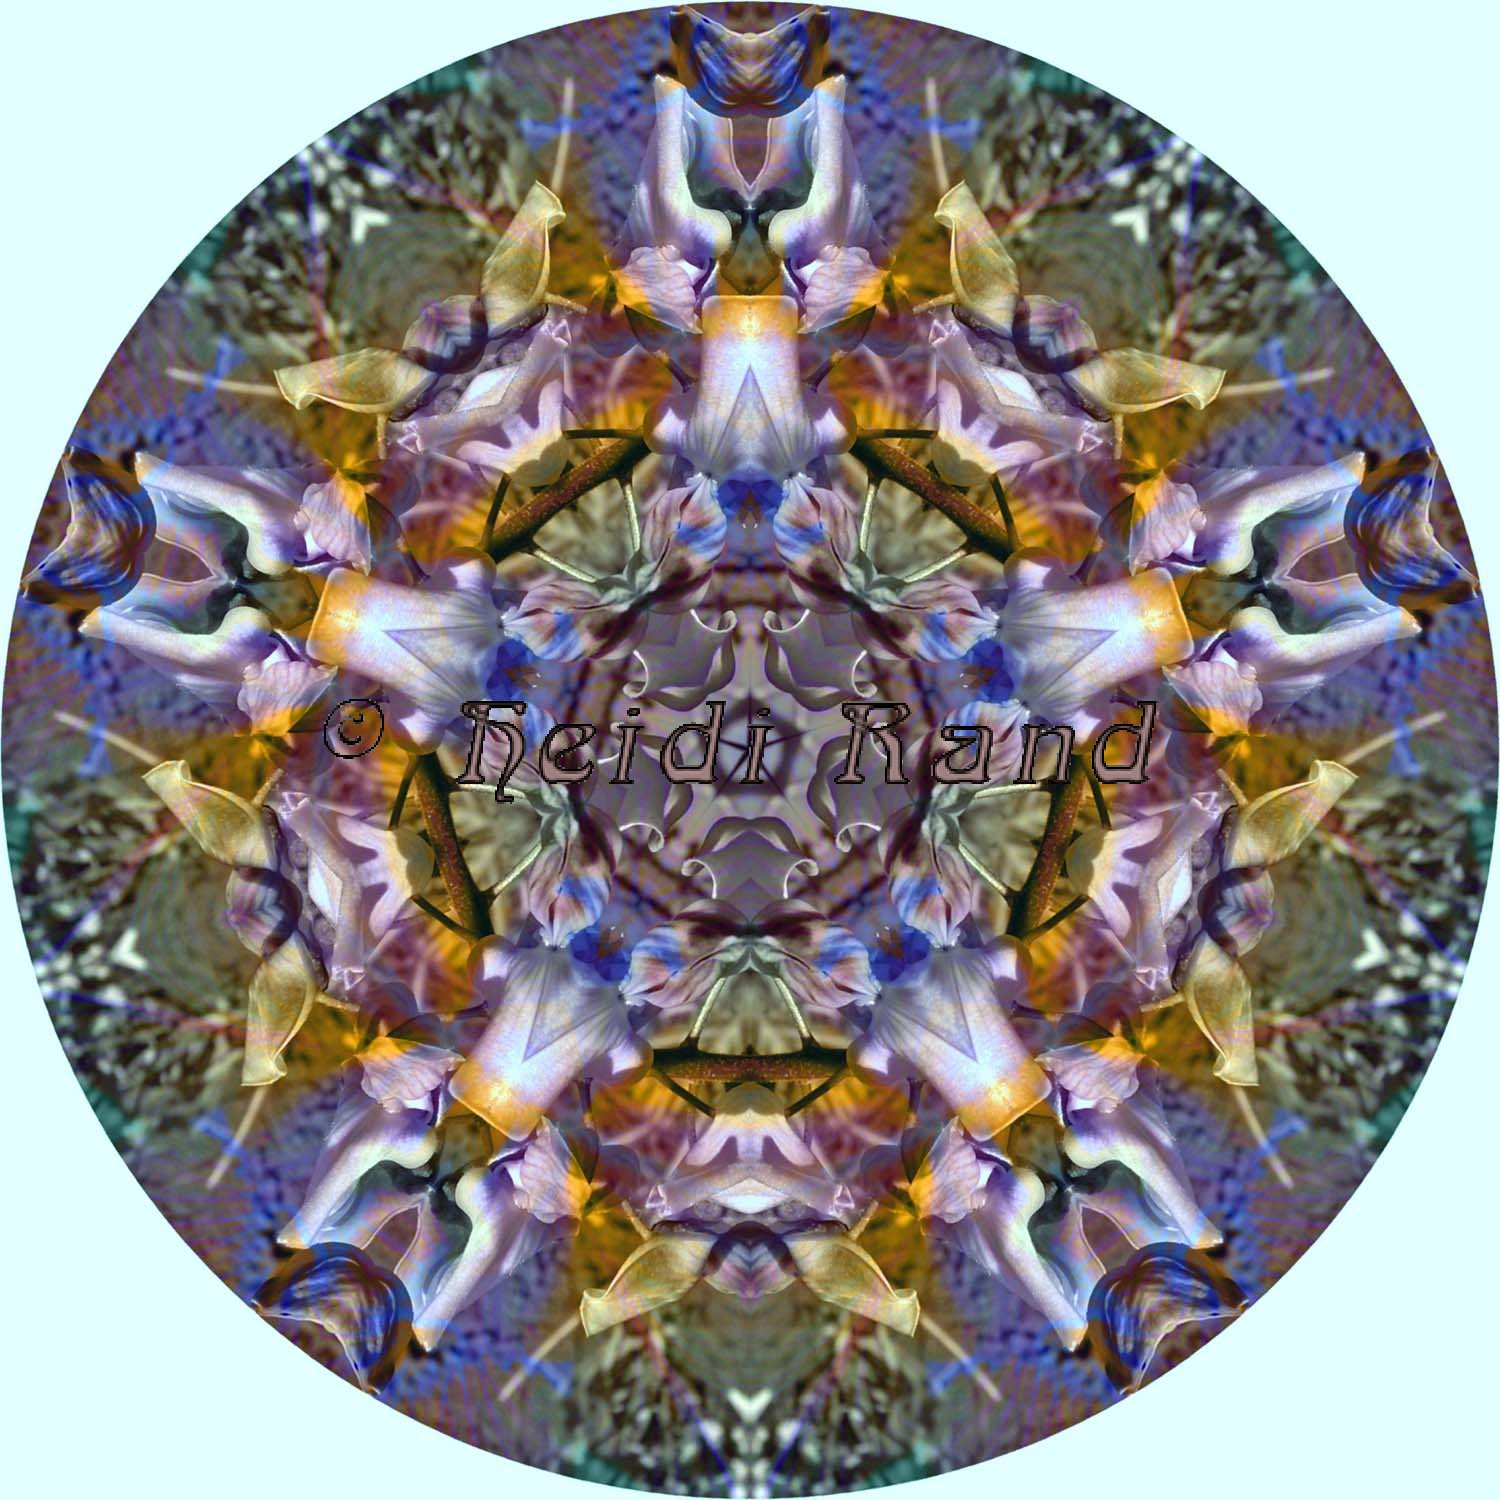 Iris multicolor and wisteria mandala